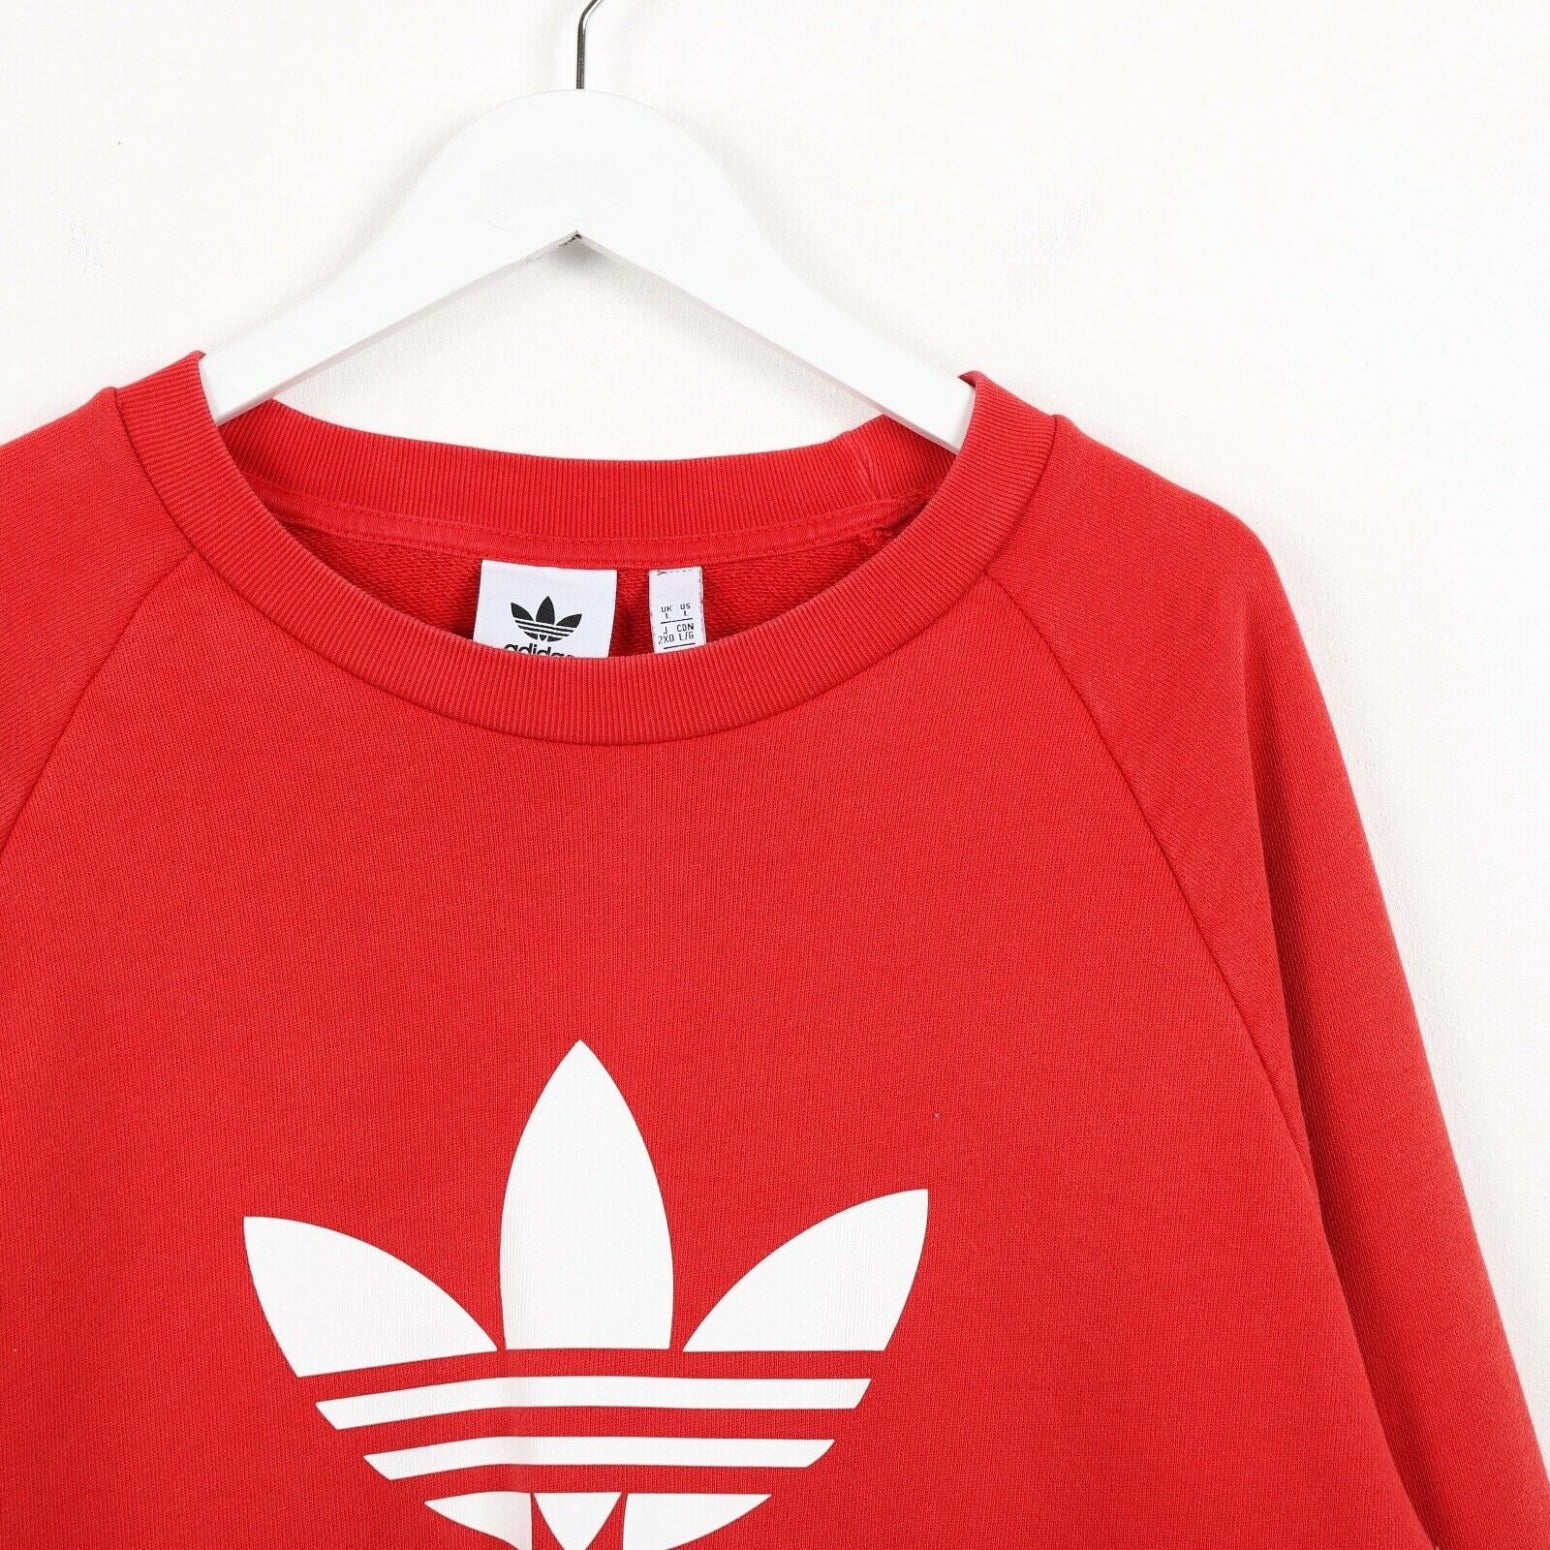 Vintage ADIDAS Big Logo Longline Sweatshirt Jumper Red Large L